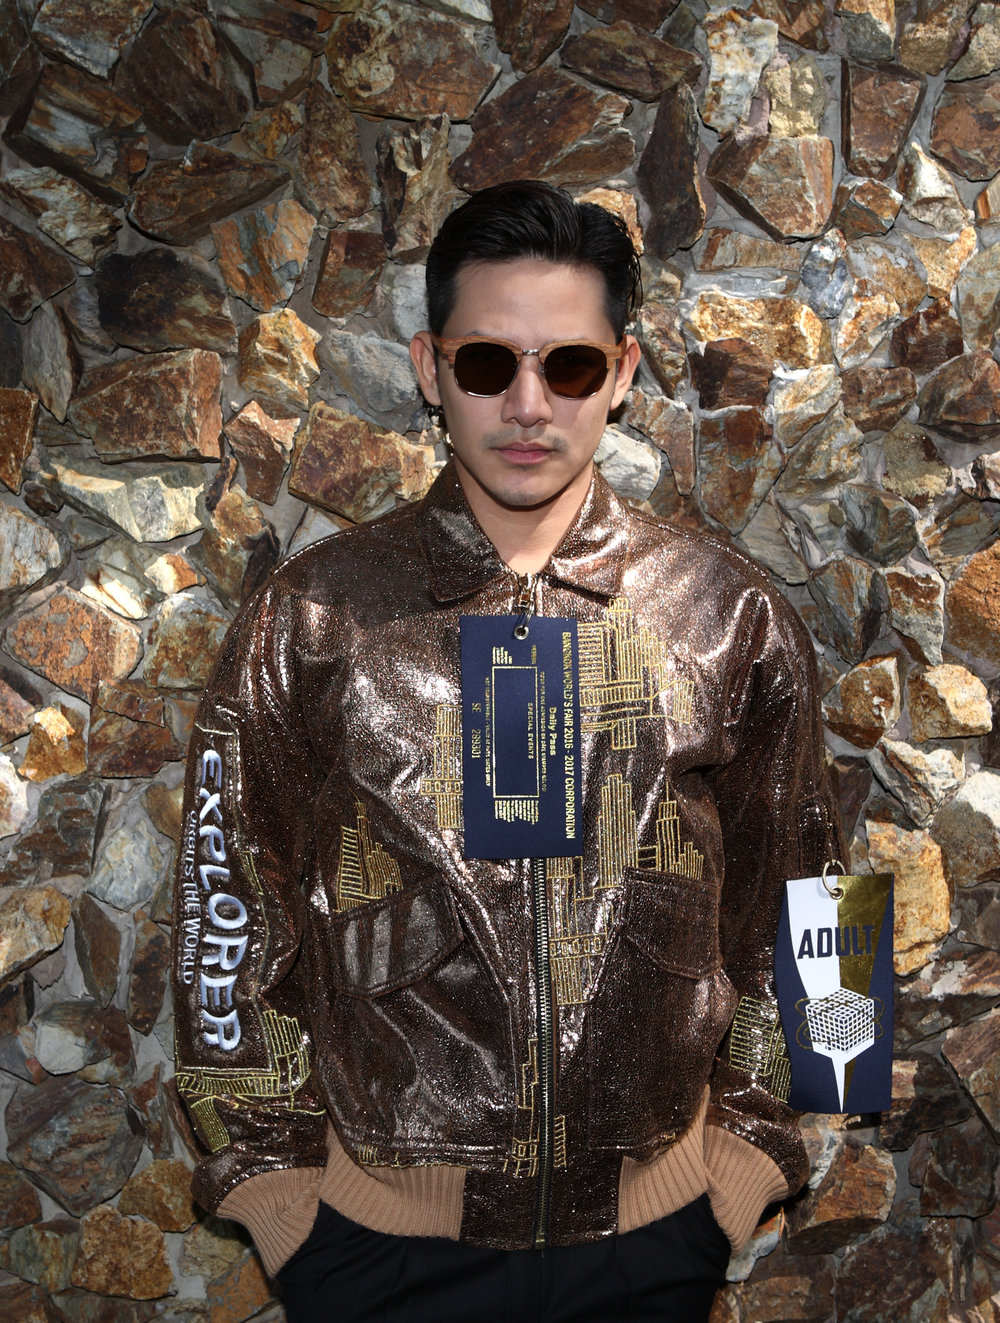 clothes : Q Play and Design /Sunglasses : Mister hoots Brand